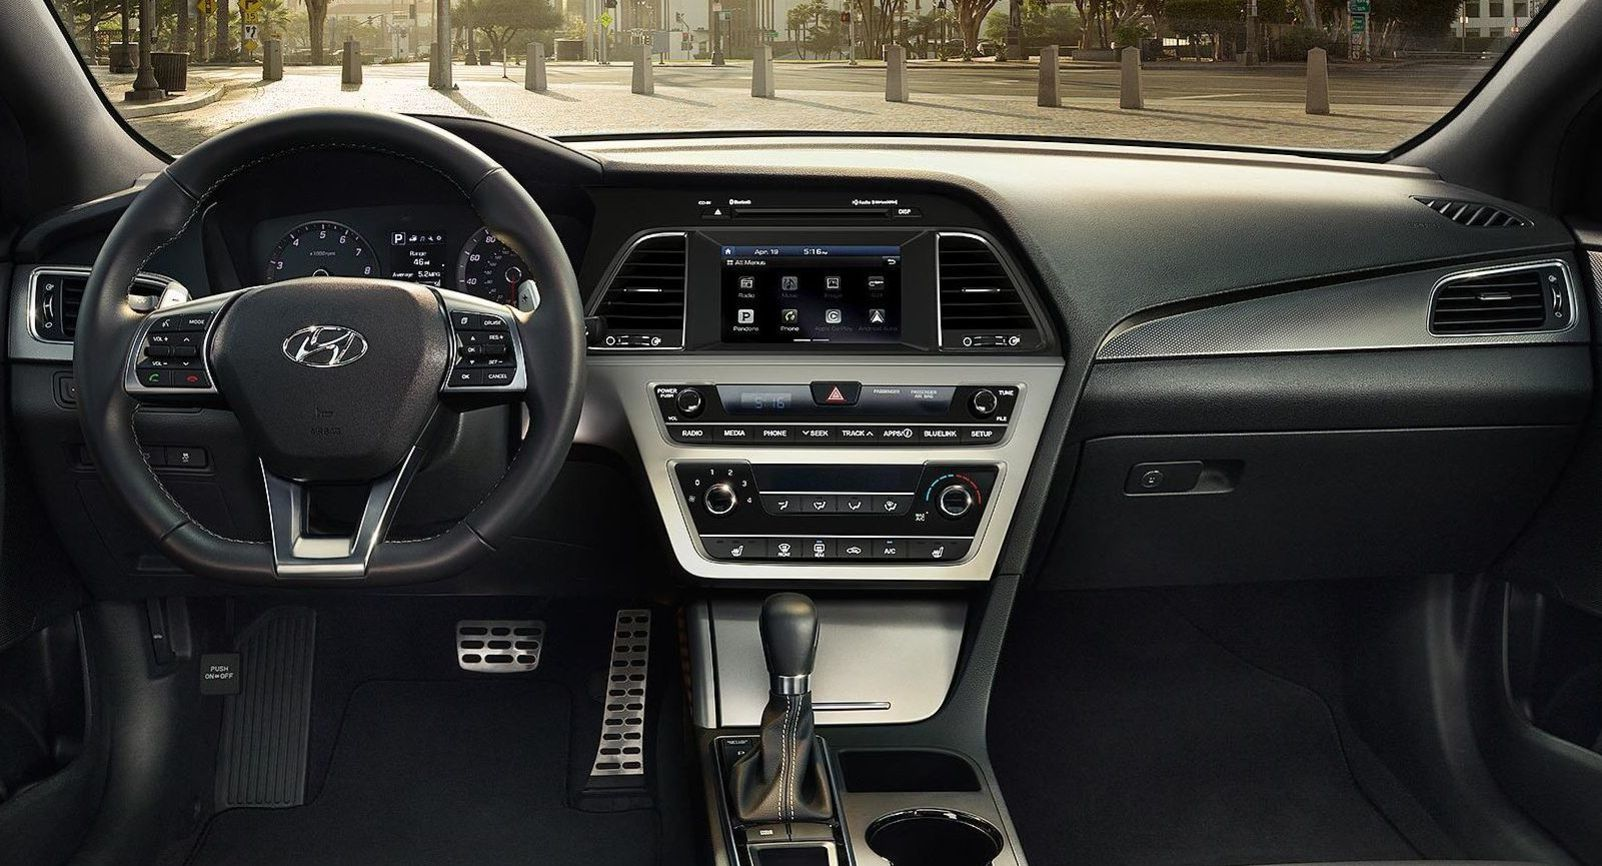 The Interior of the 2017 Sonata